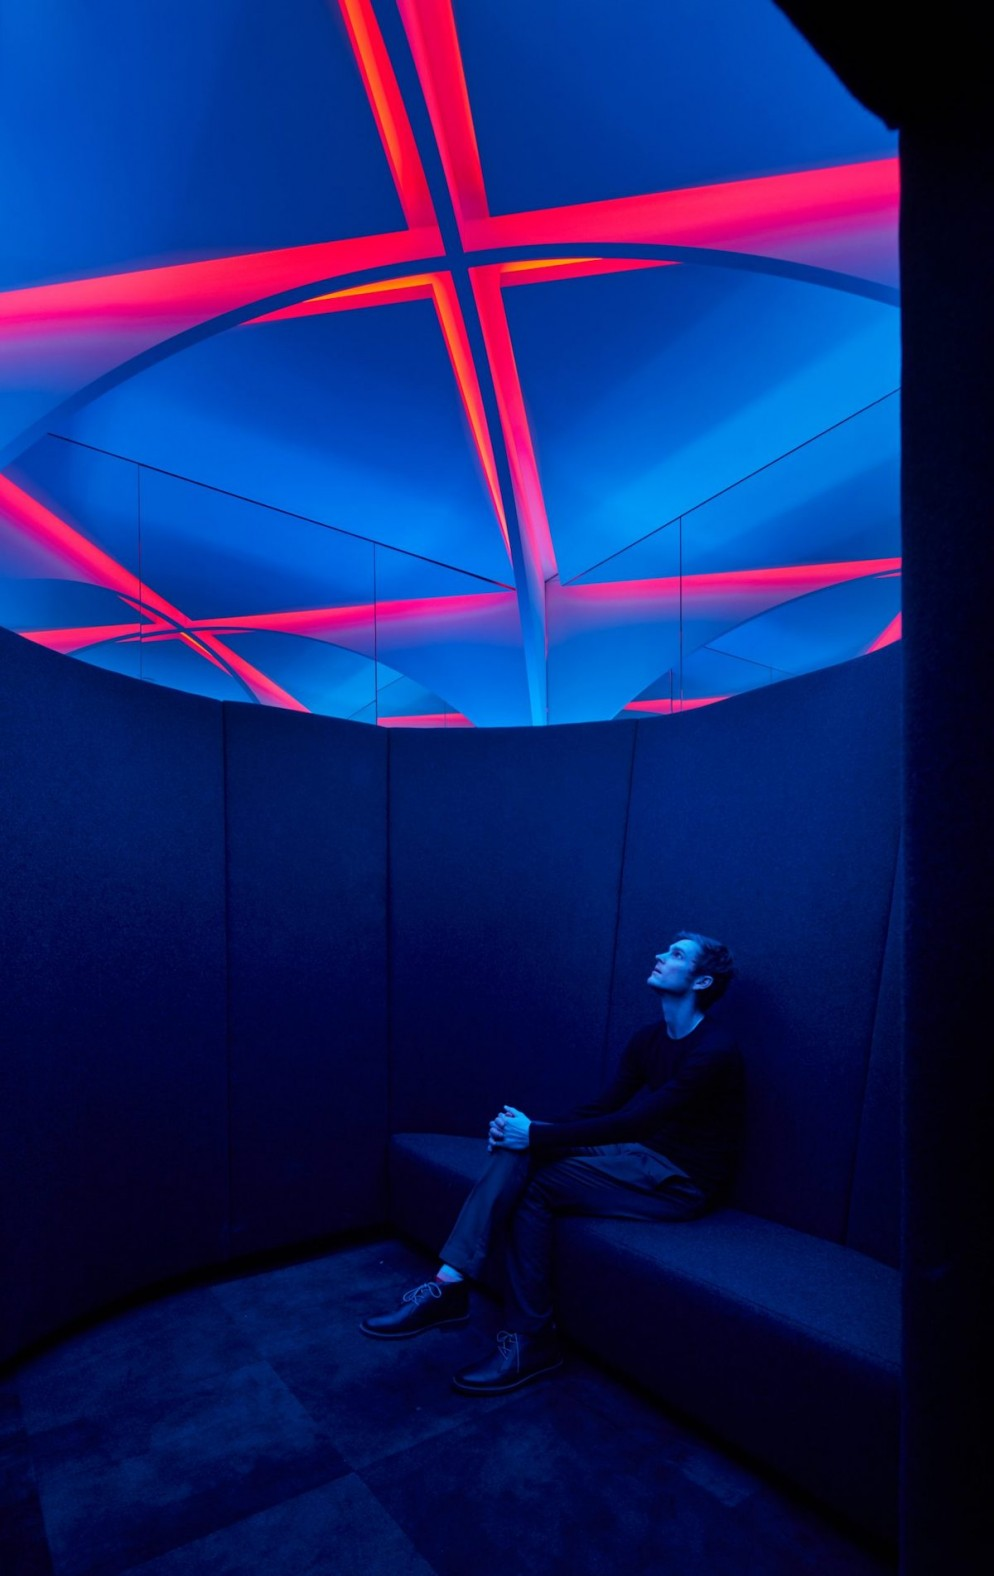 immersive-spaces-series-meditation-rooms-interiors-office-of-things-arches_dezeen_2364_col_1-scaled